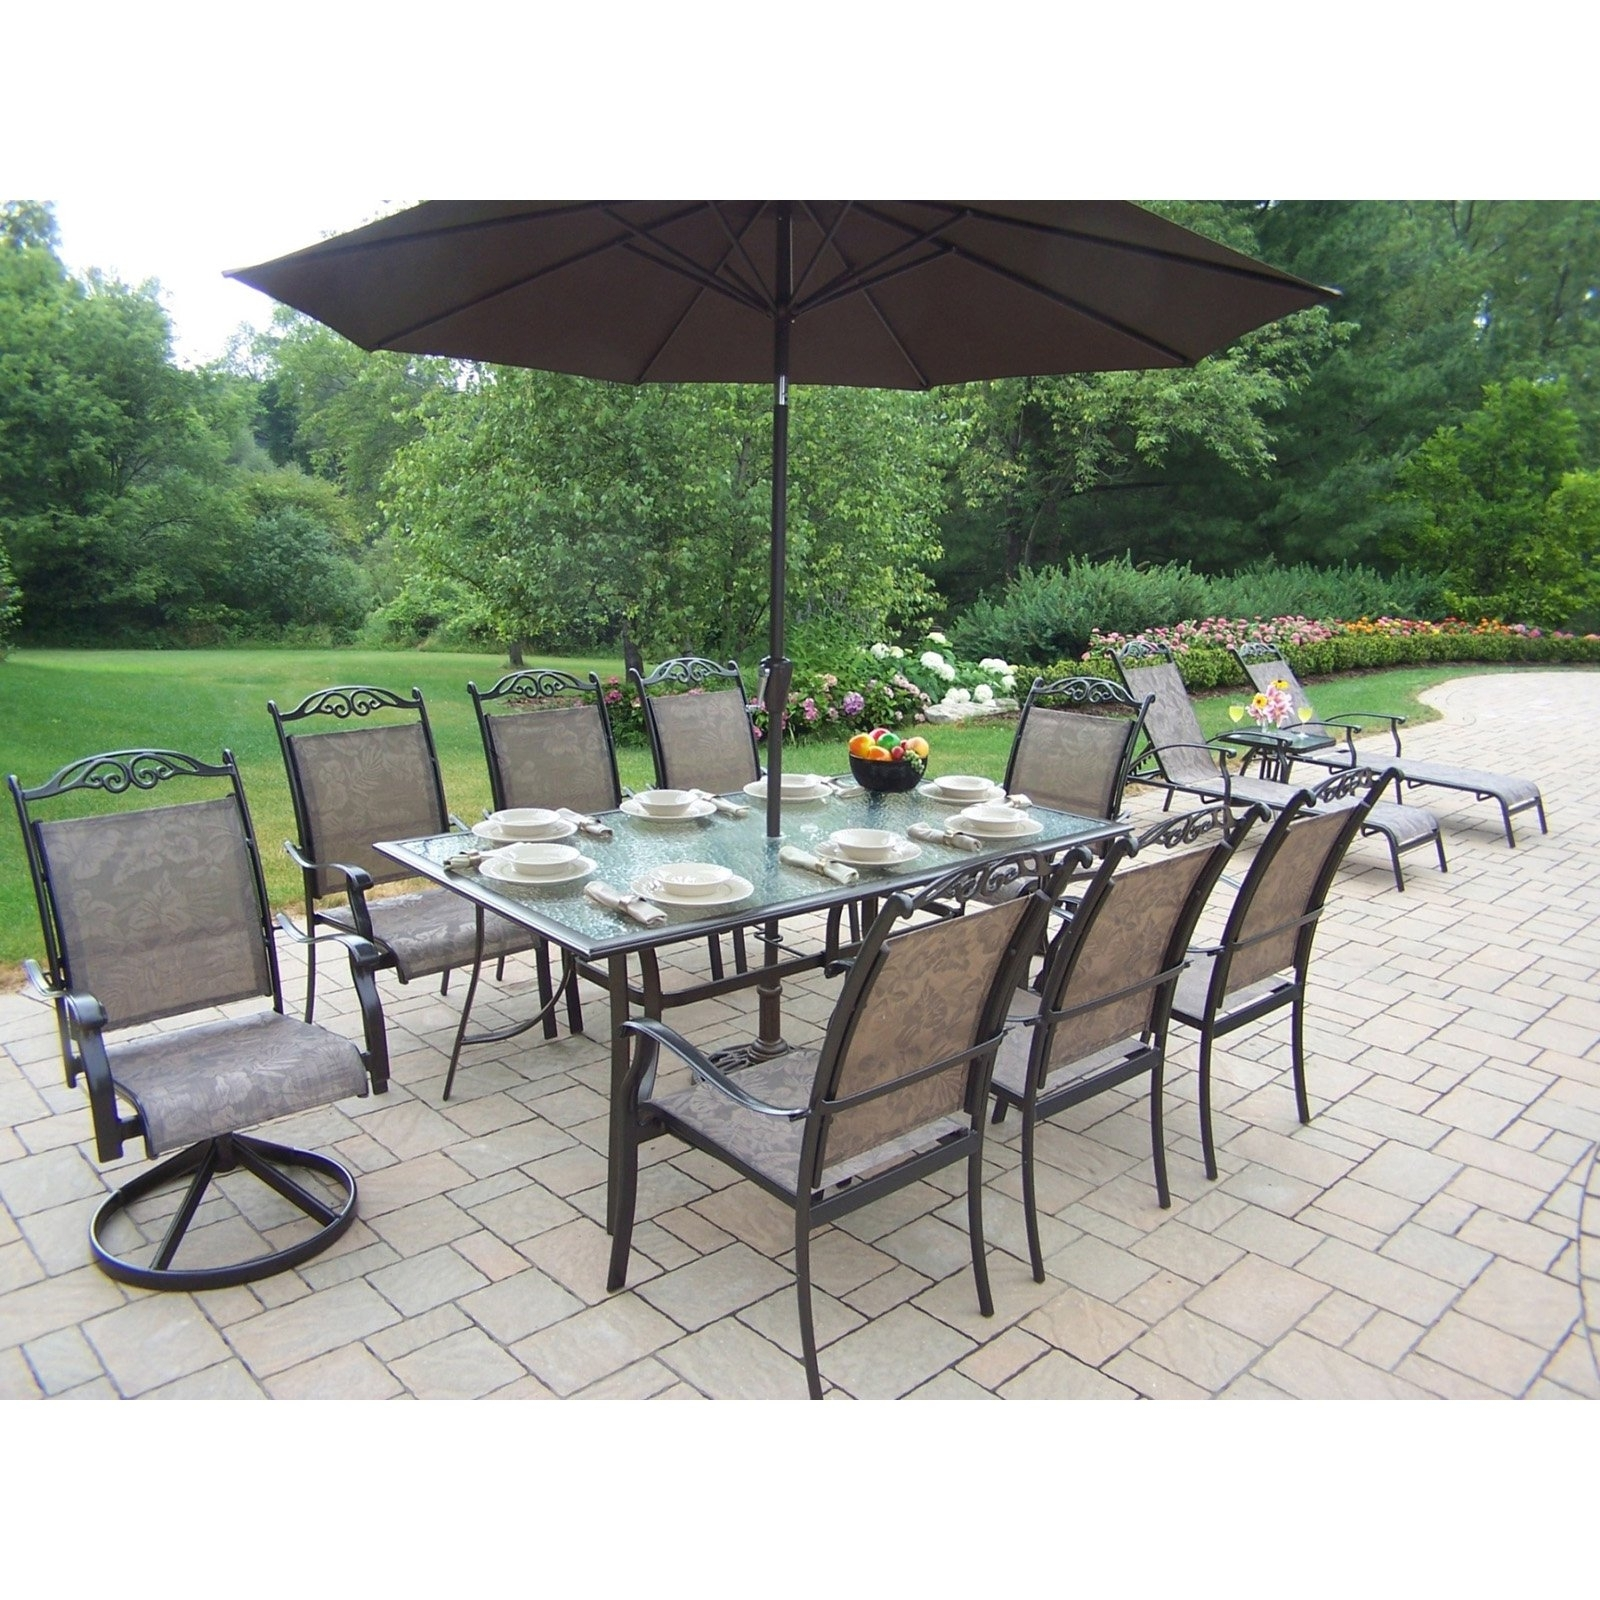 Patio Table Sets With Umbrellas In Latest Patio Furniture Walmart Patio Furniture Sets Patio Dining Luxury (View 4 of 20)